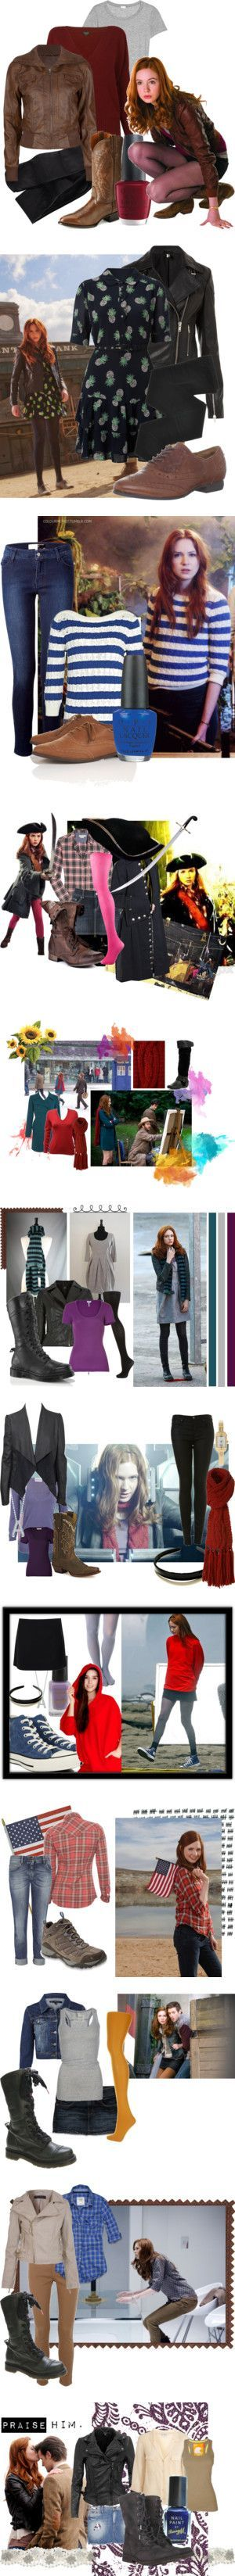 Amy Pond Sex Stories Simple the 25+ best amy pond costume ideas on pinterest | amy pond